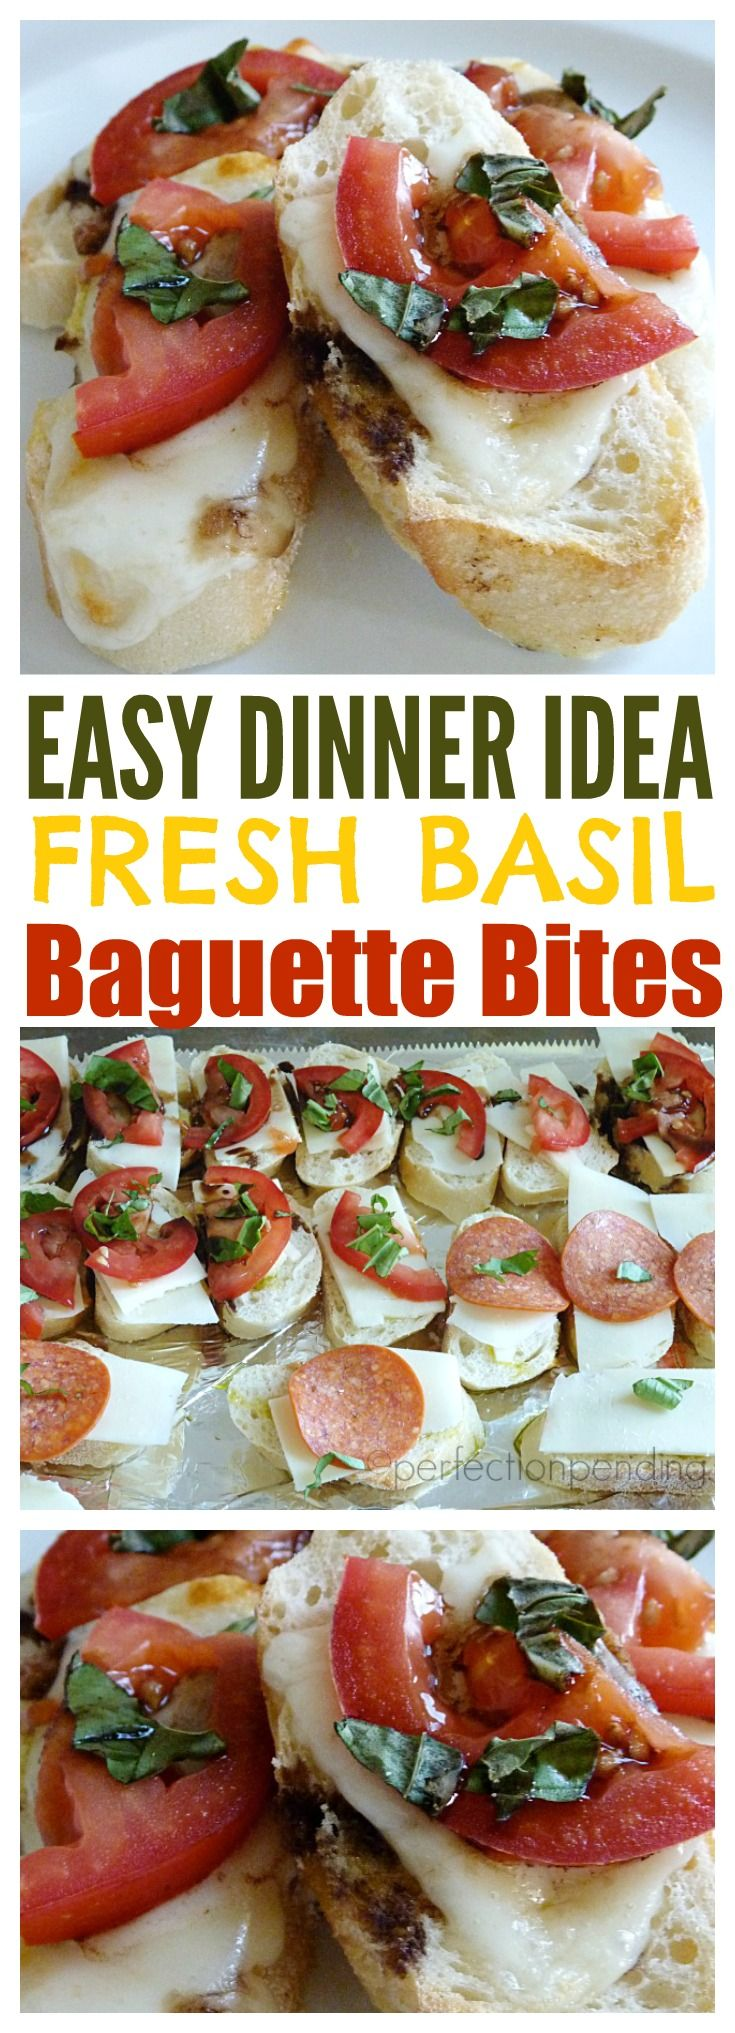 This easy dinner idea is perfect for the whole family. If you're looking for an appetizer, or a finger food that kids can help make, and will love to eat, then this recipe is it. It's the perfect vegetarian light dinner idea on a warm summer day, and a gr